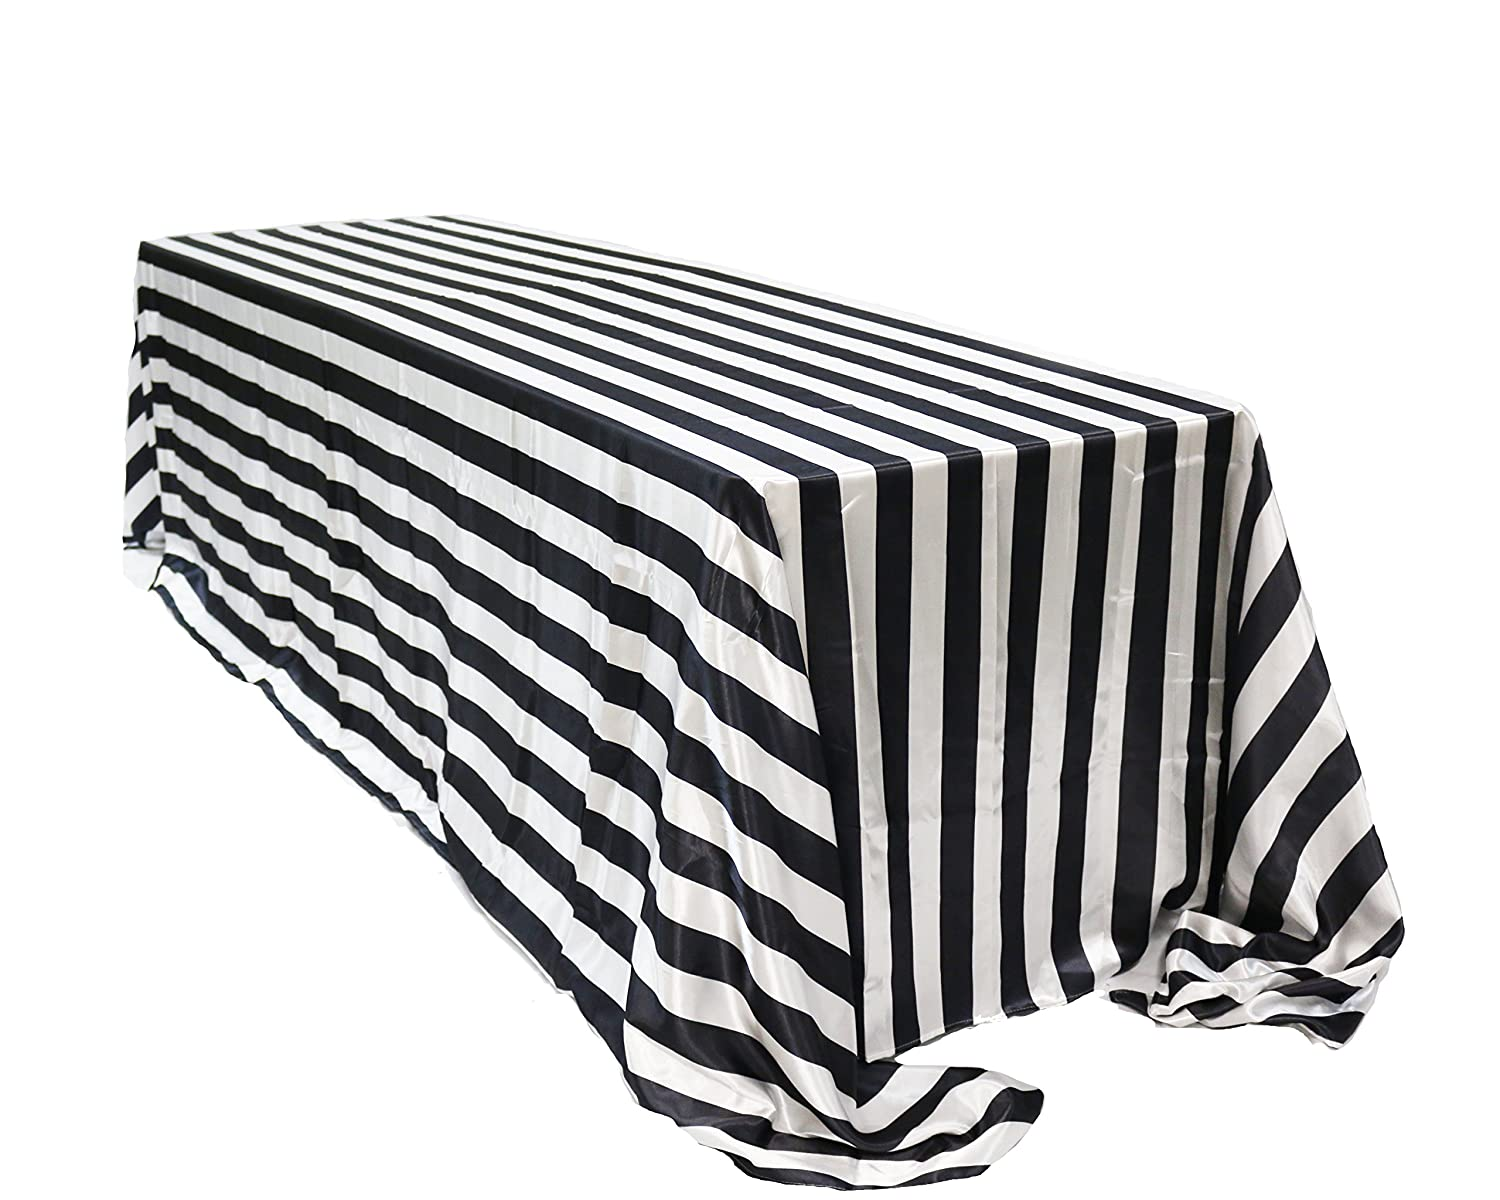 Enjoyable Your Chair Covers 90 X 132 Inch Rectangular Satin Tablecloth Black White Striped Rectangle Shiny Satin Table Linens For 6 Ft Rectangular Tables Beatyapartments Chair Design Images Beatyapartmentscom